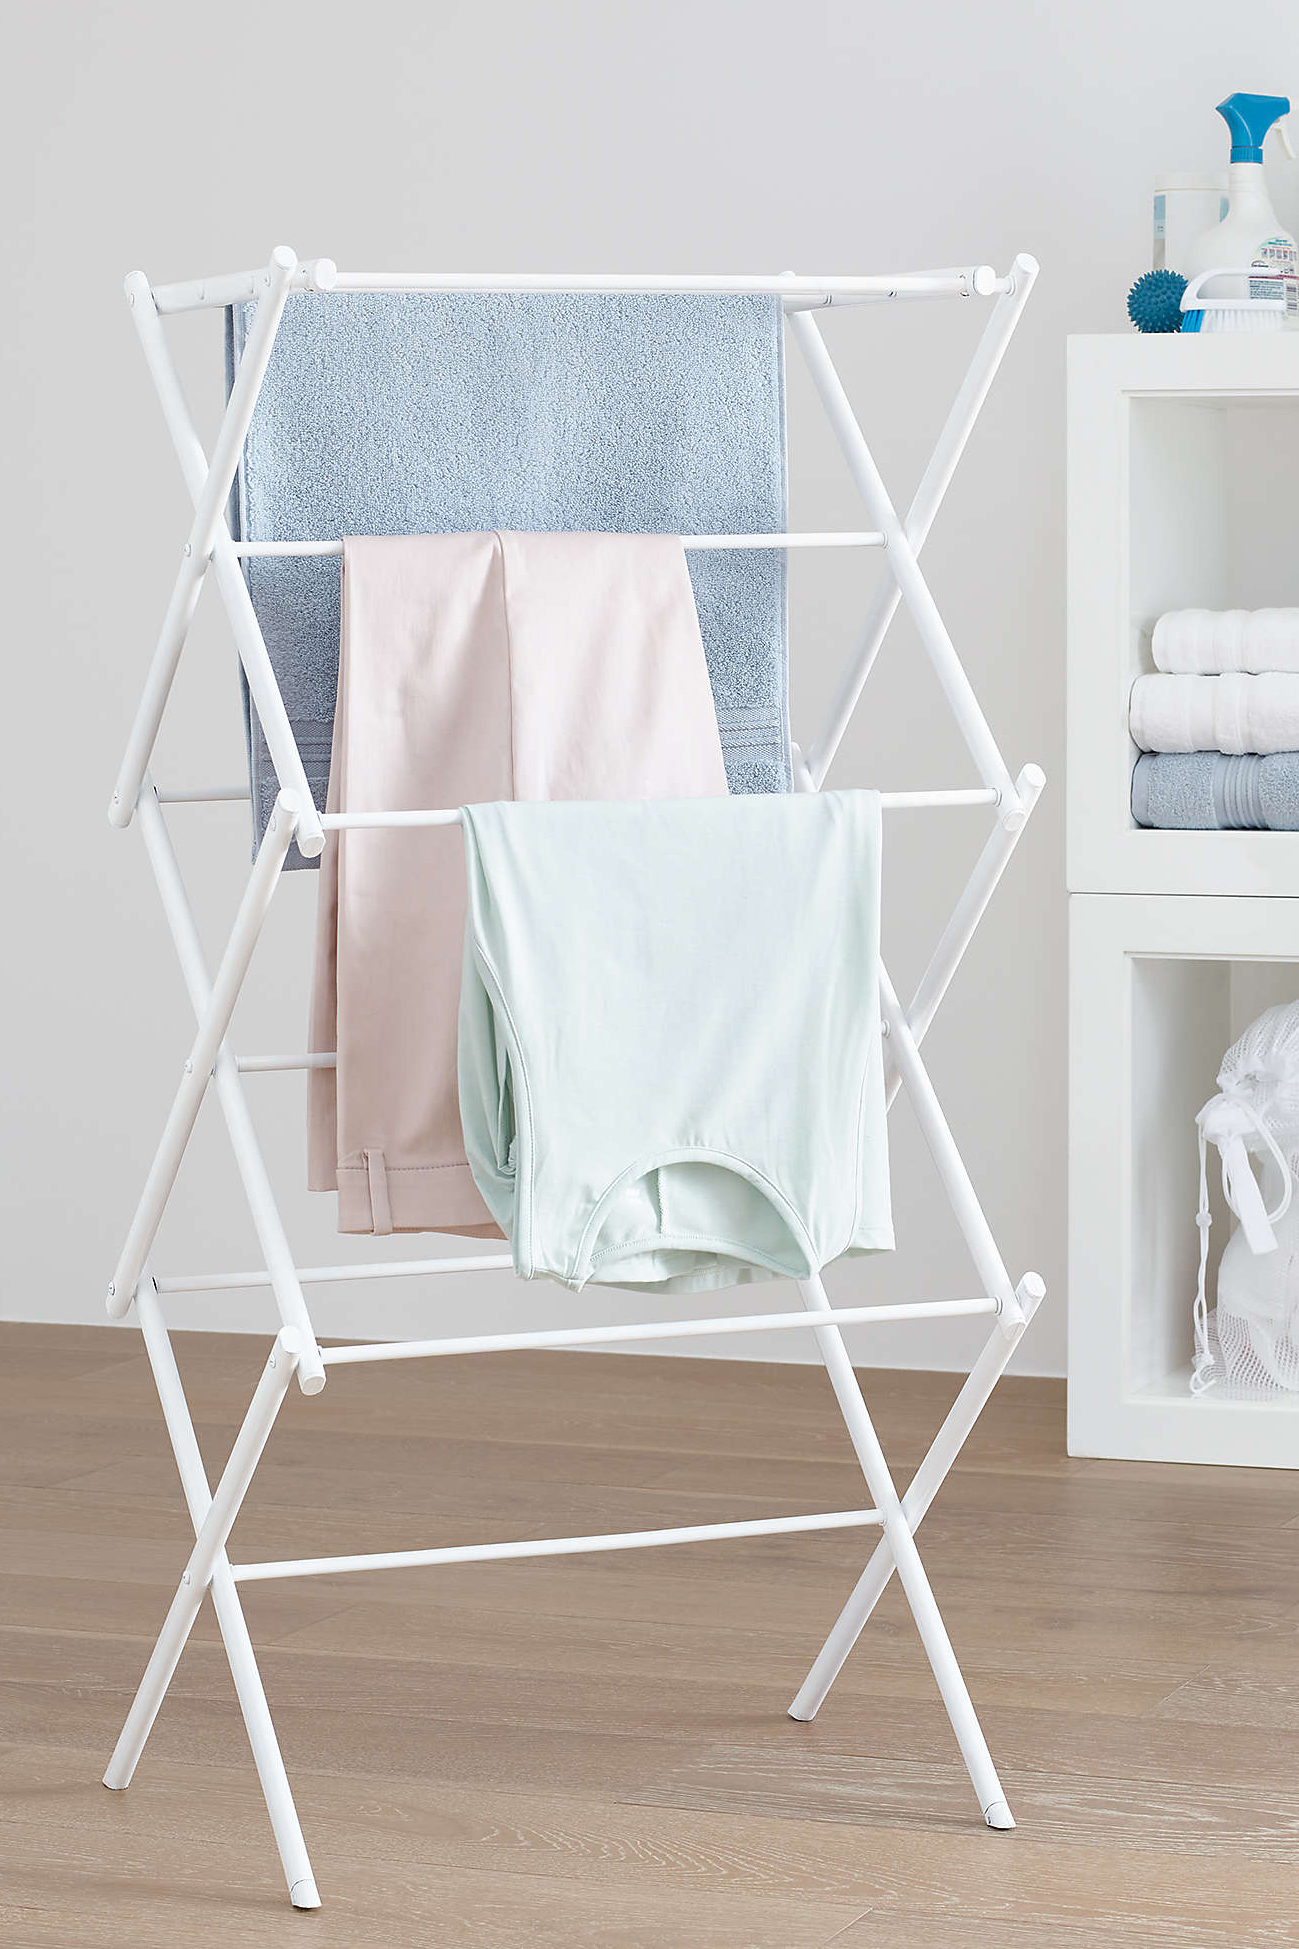 Squared Away Adjustable Wing Arm Laundry Drying Rack